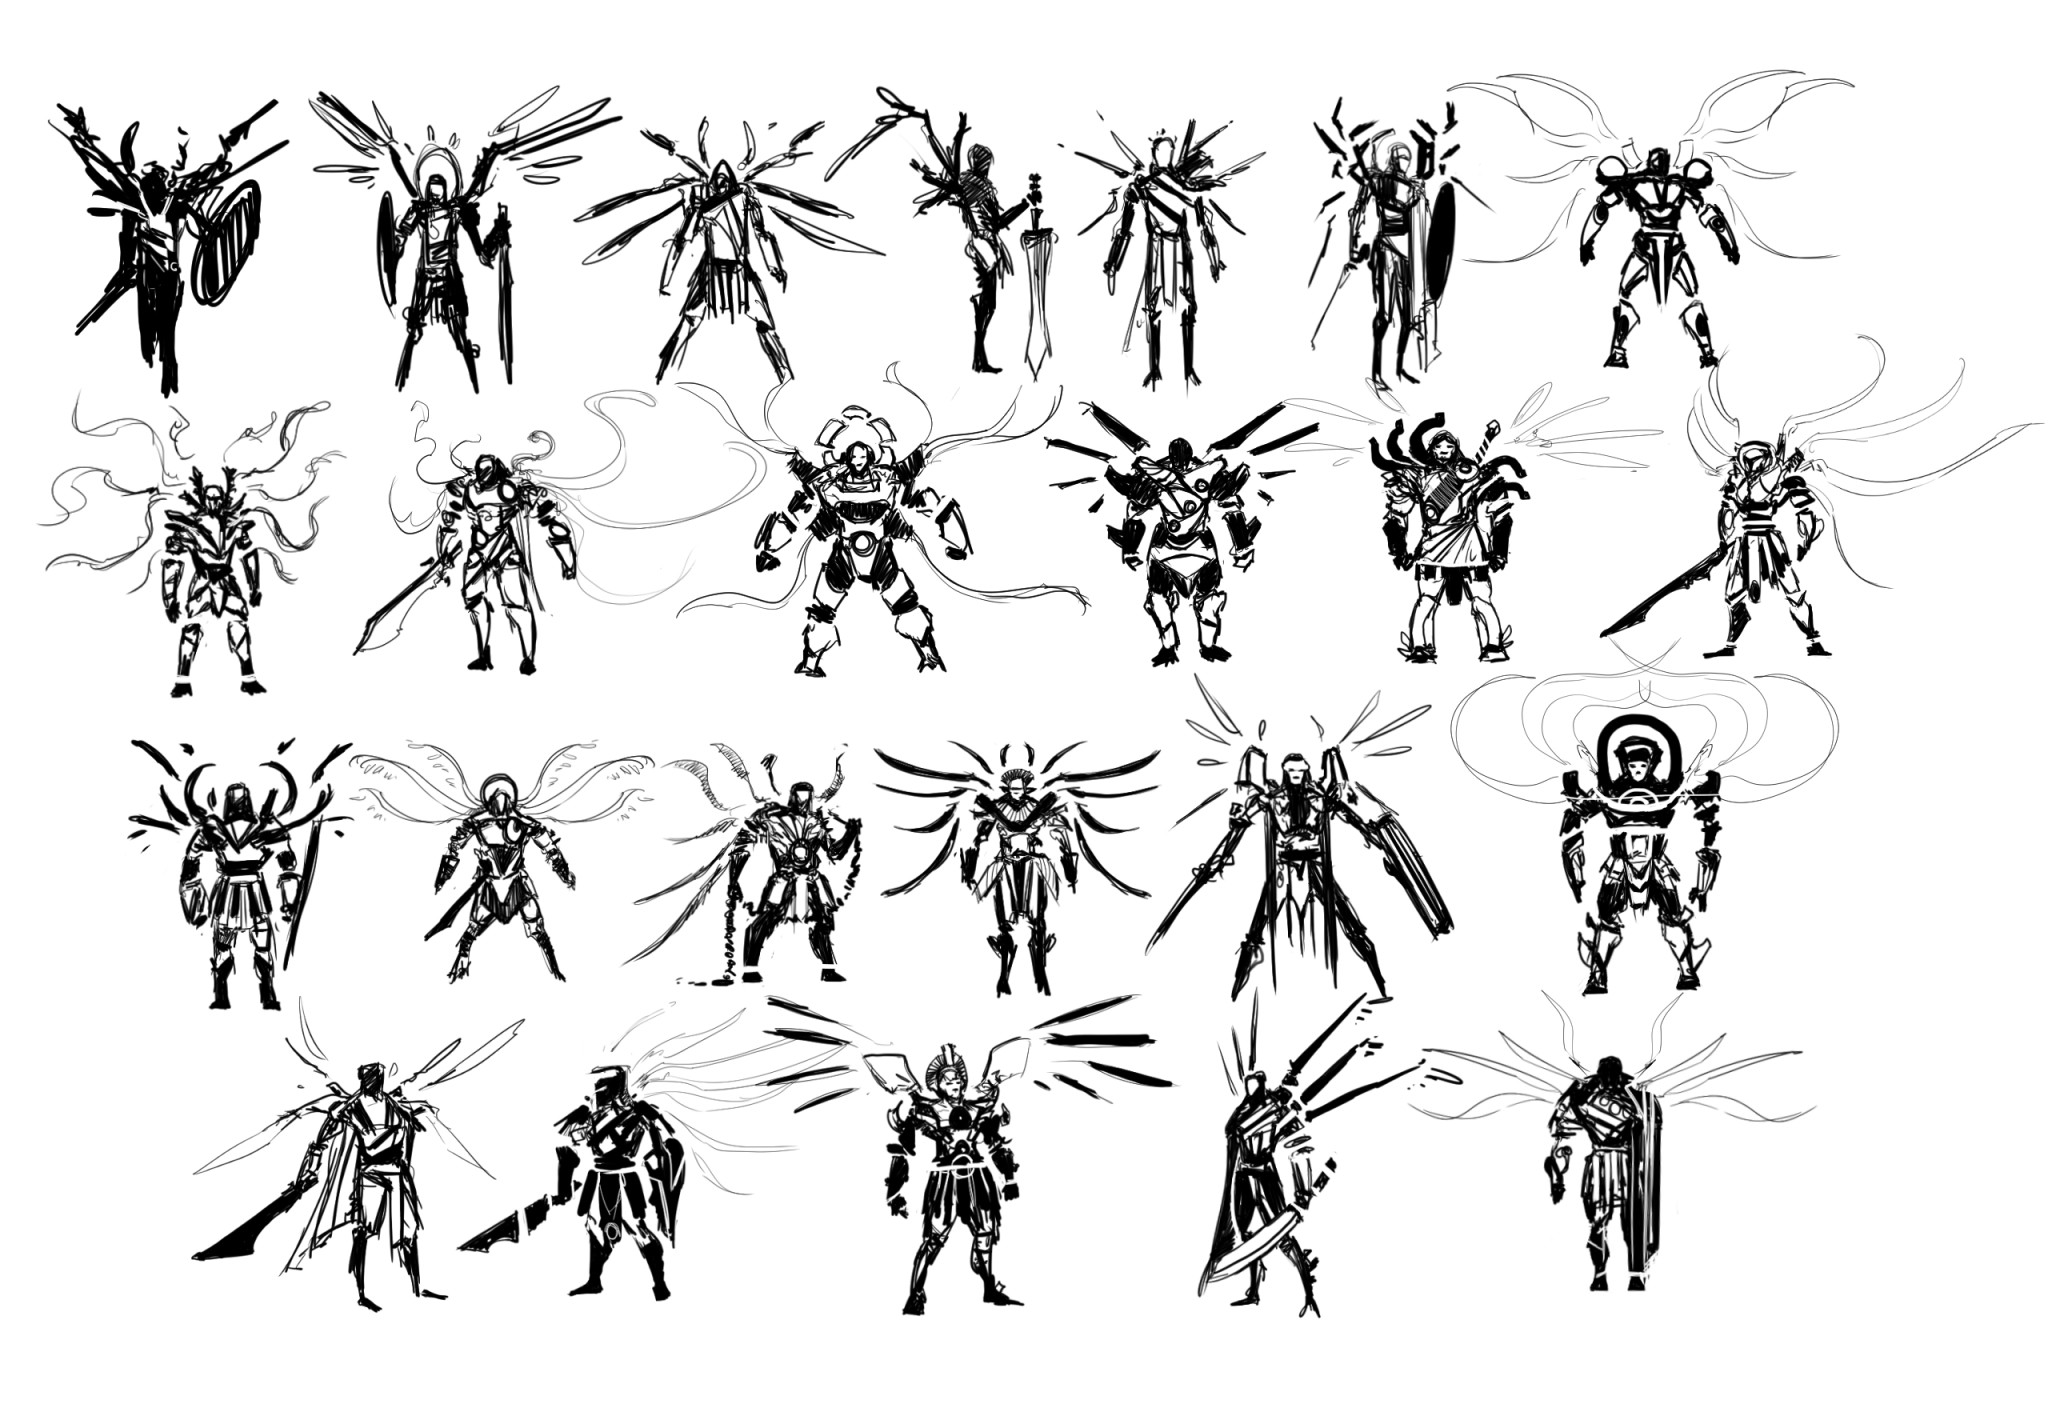 Started with thumbnails